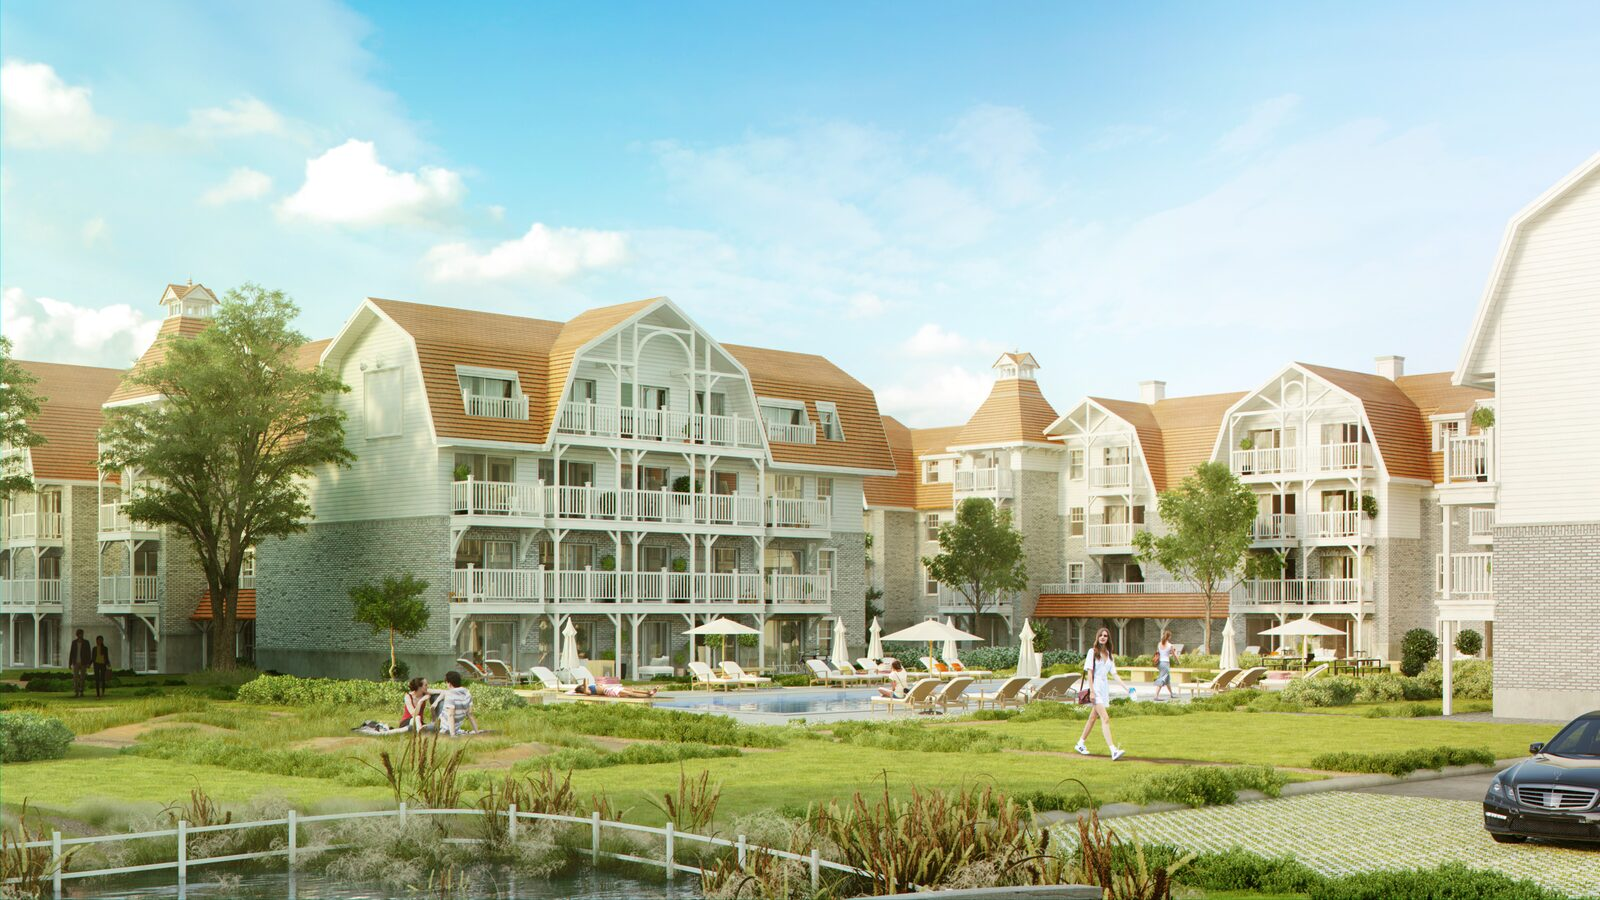 New destination for June 2021: Camiers Sainte Cécile near Le Touquet Paris Plage !